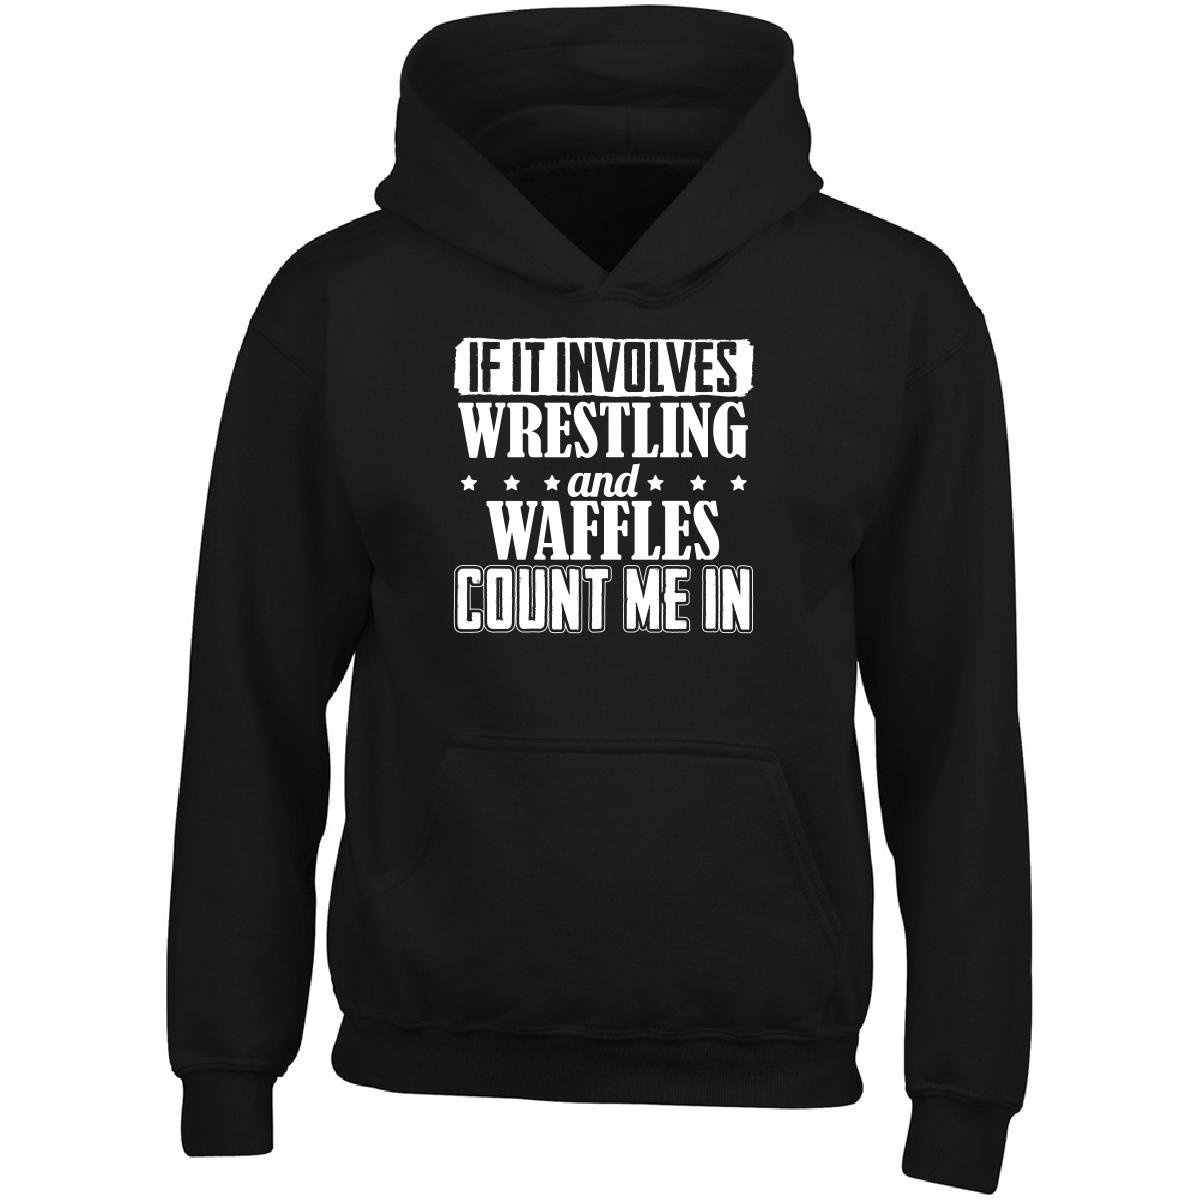 If It Involves Wrestling And Waffles Count Me In - Adult Hoodie L Black